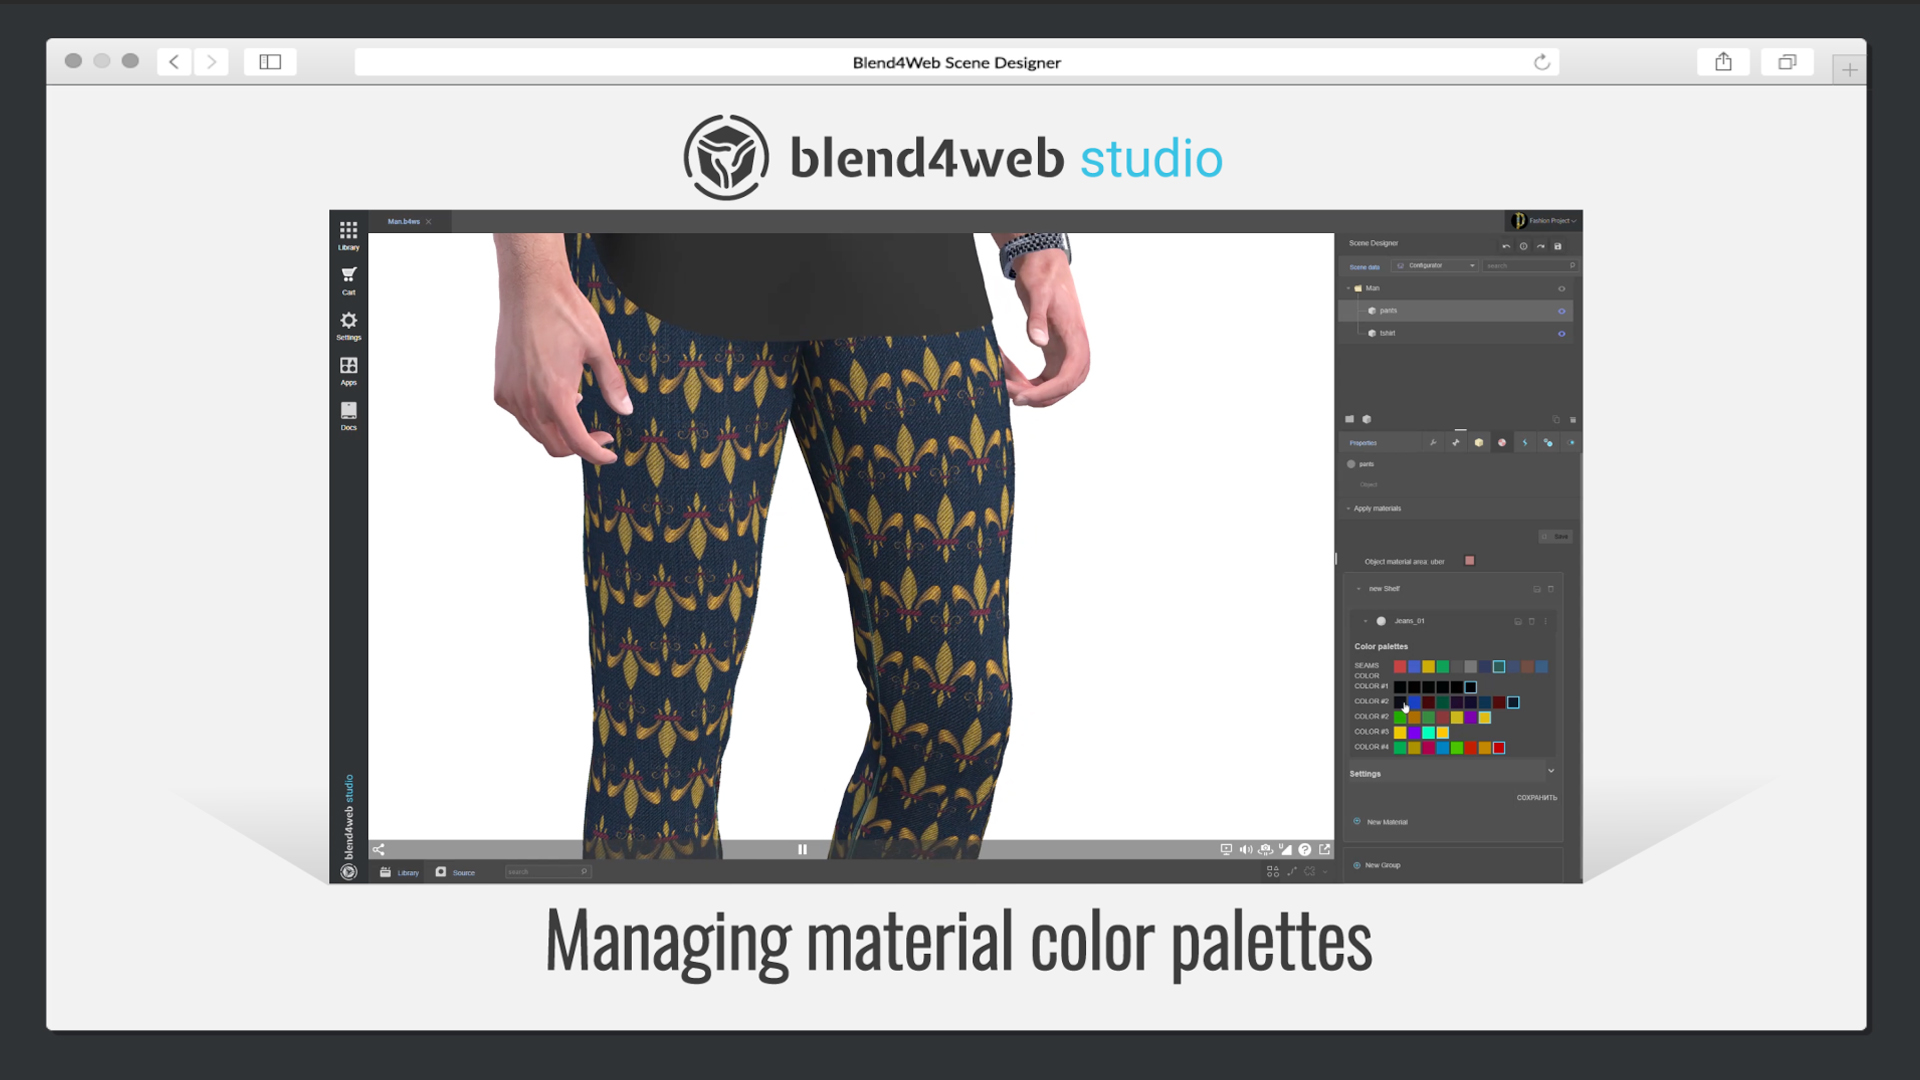 Blend4Web Studio: Managing material color palettes